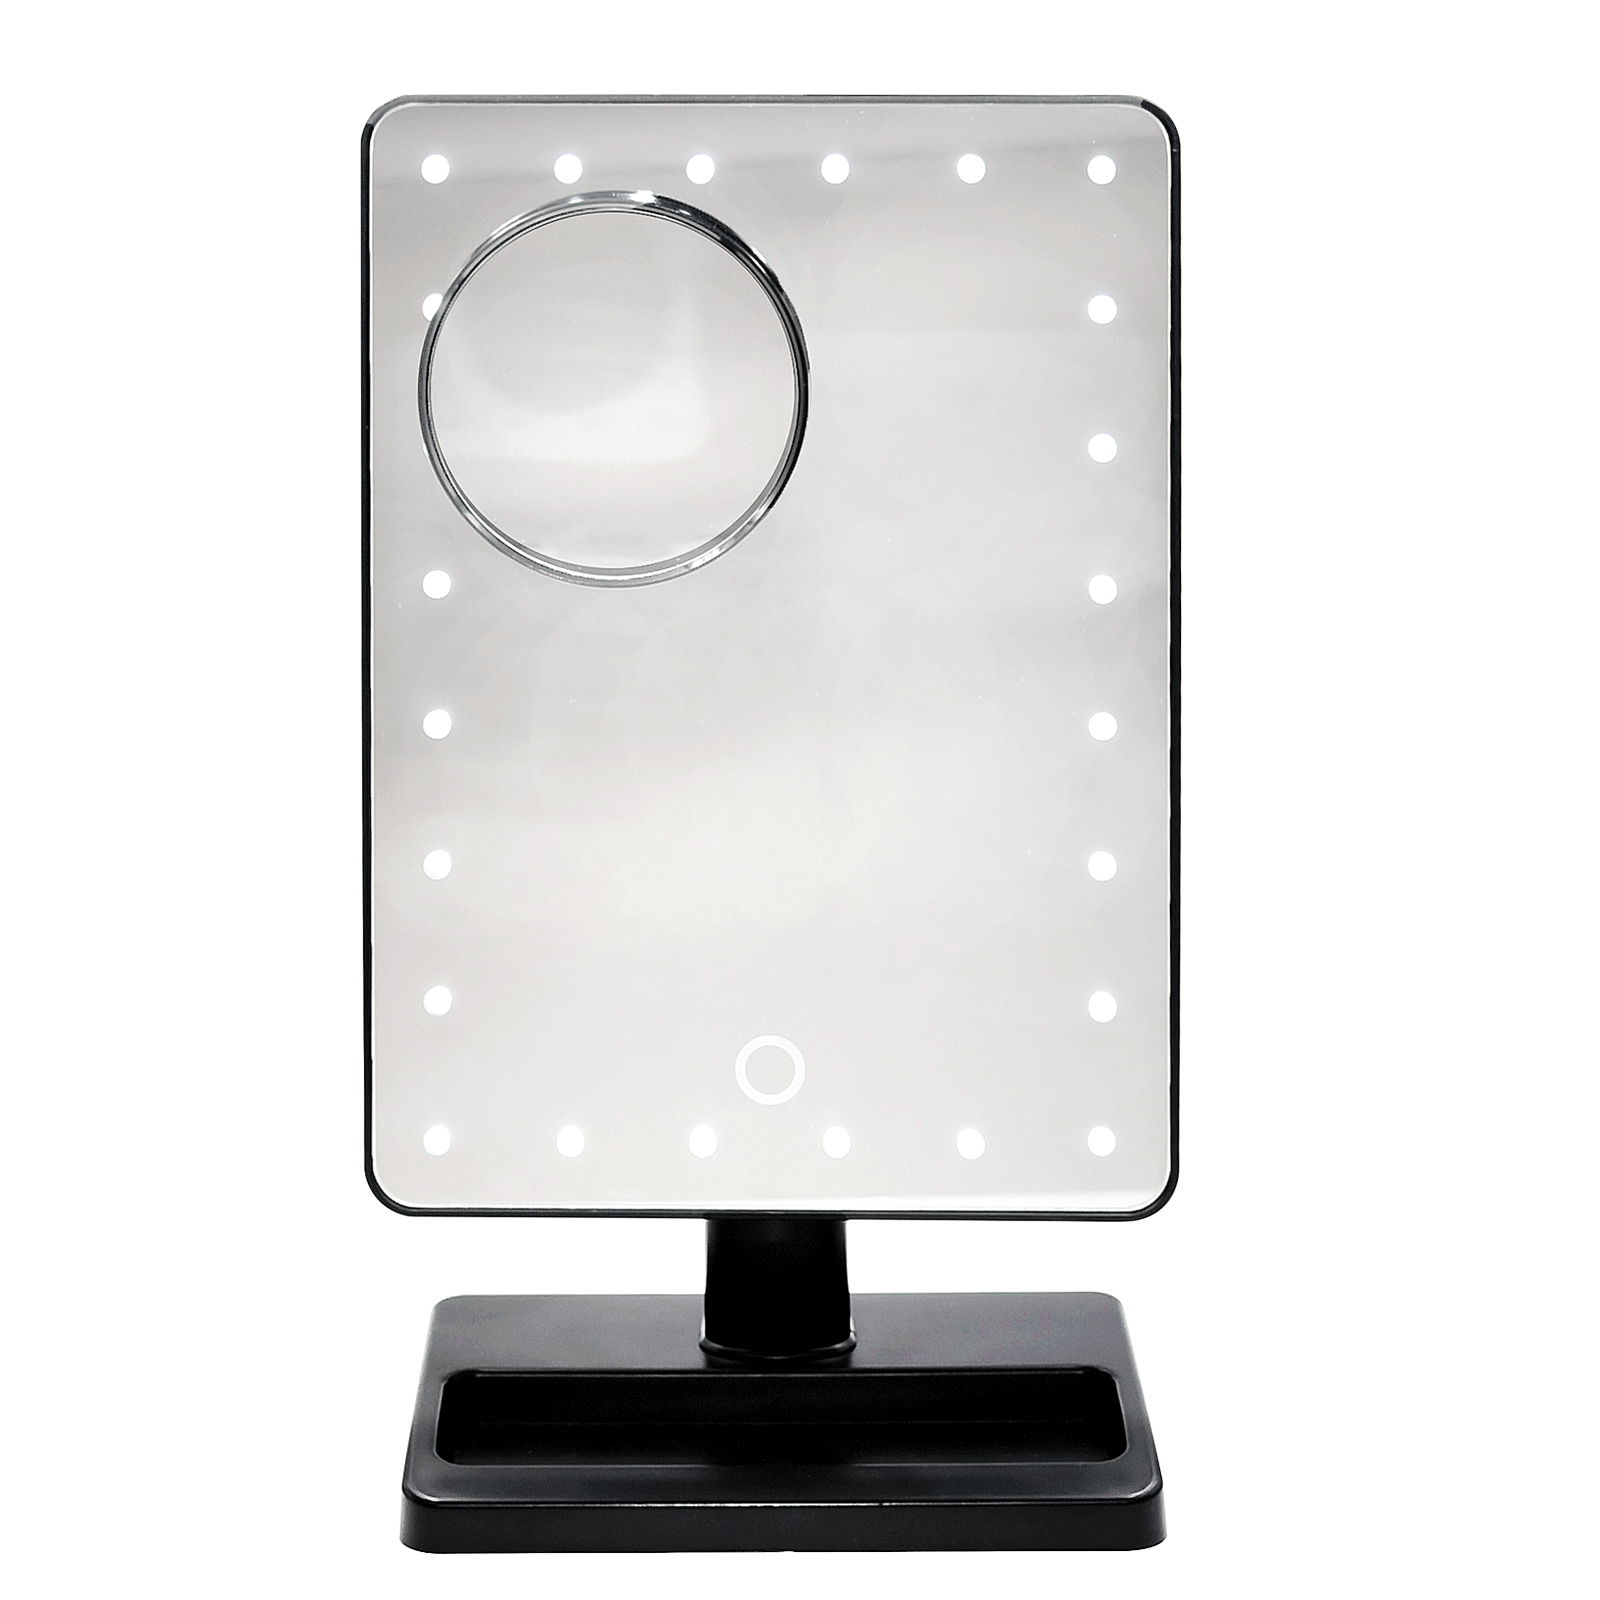 The Crown Pro LED Dimmable Makeup Mirror